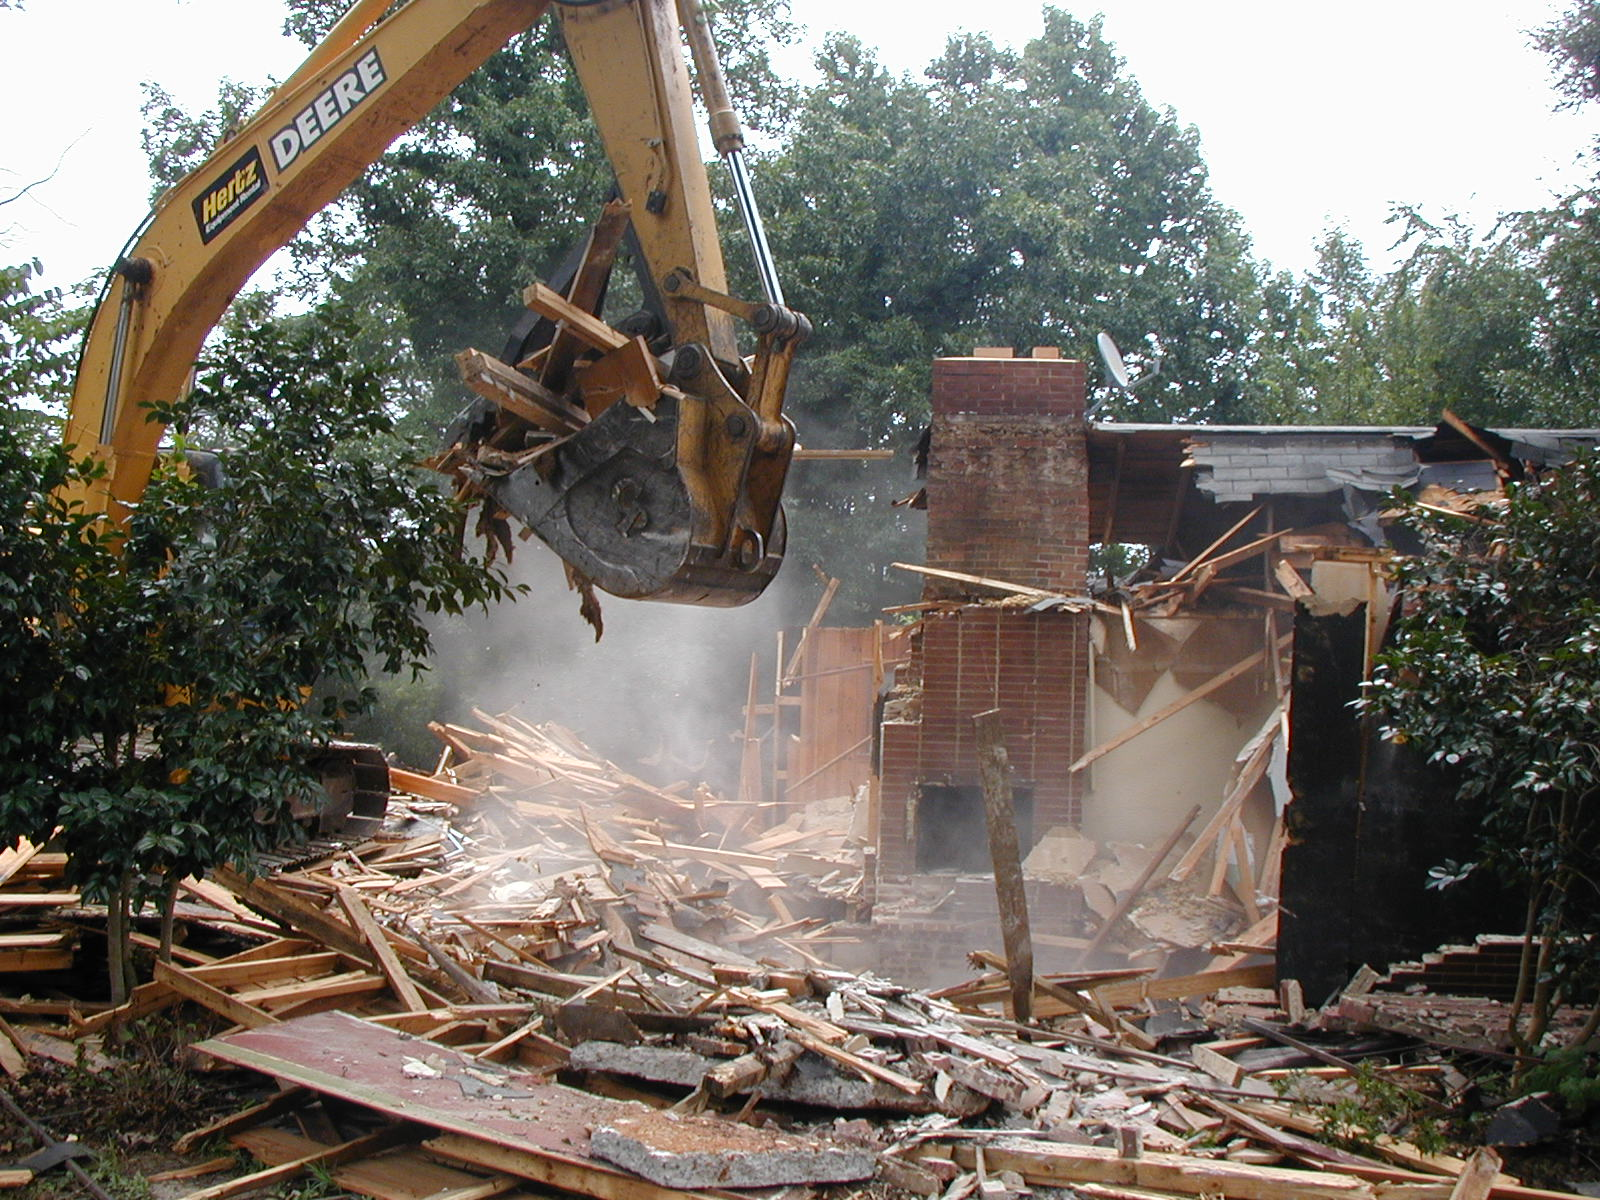 Demolition Services and Outdoor Contracting